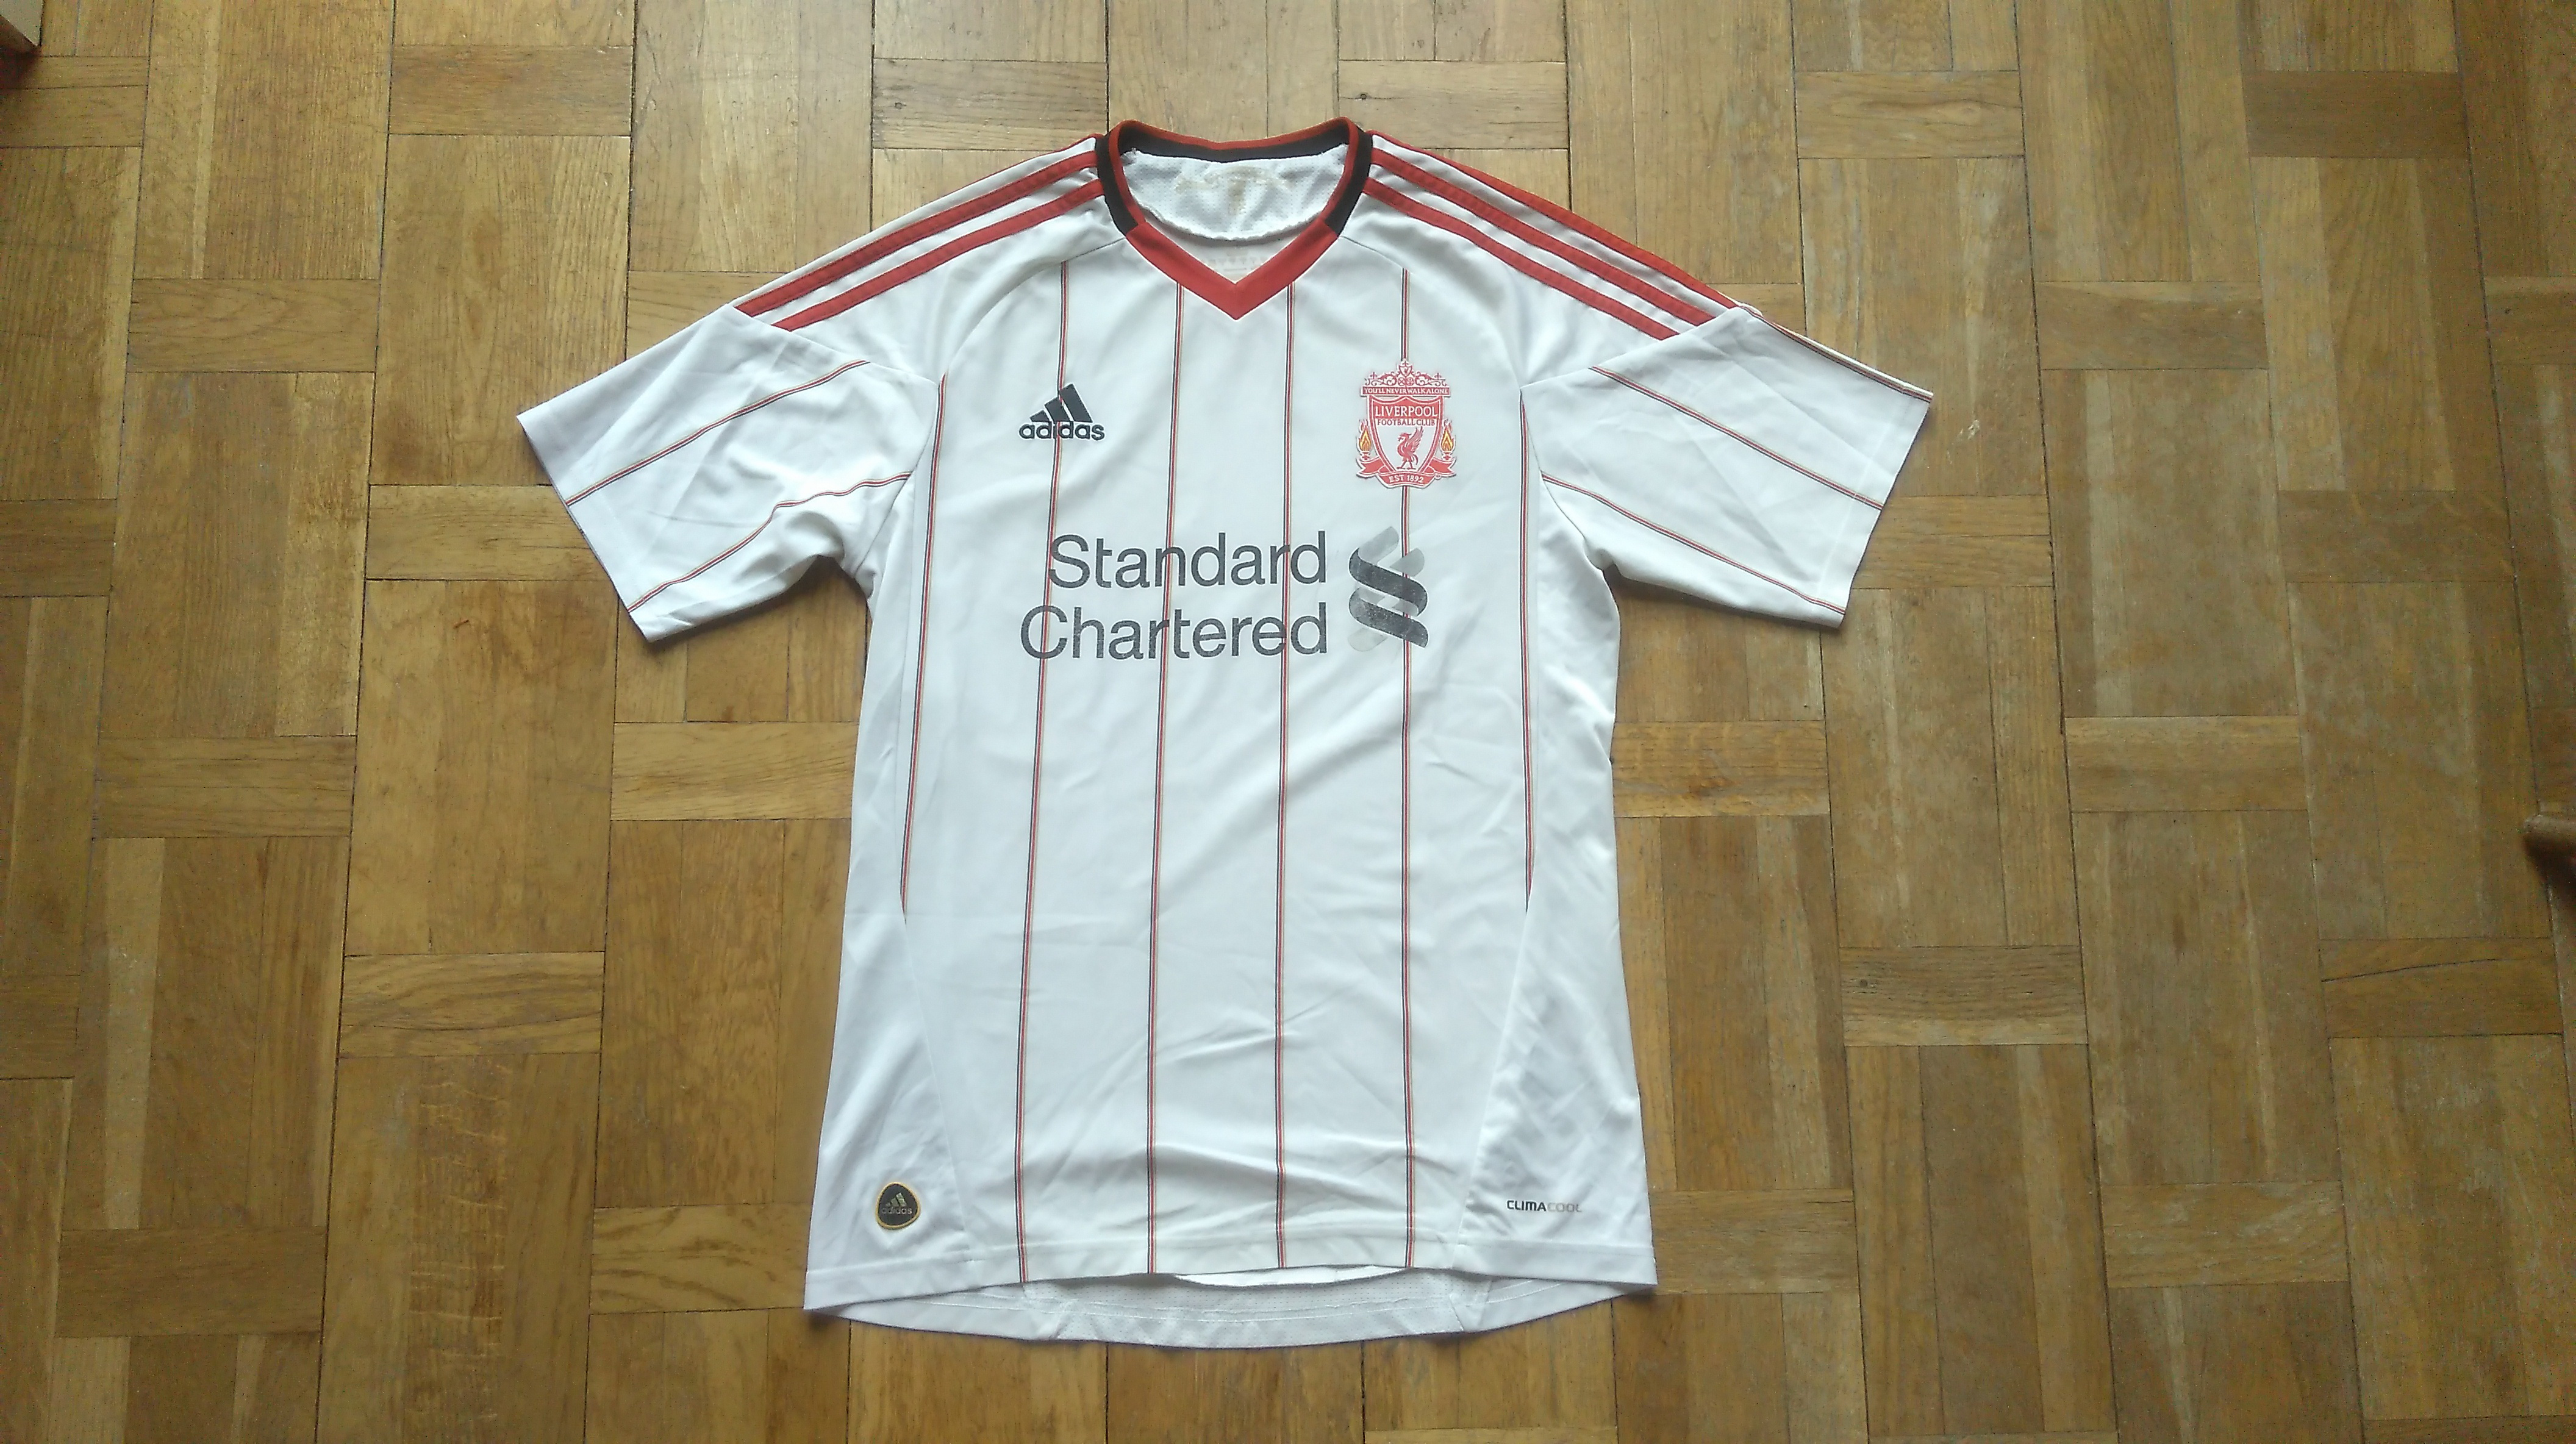 super popular f24cc 4dae2 LFC ADIDAS JERSEY Soccer Shirt Liverpool Football Club Jersey White  Football Jersey Size Small Standard Chartered Jersey Free Shipping